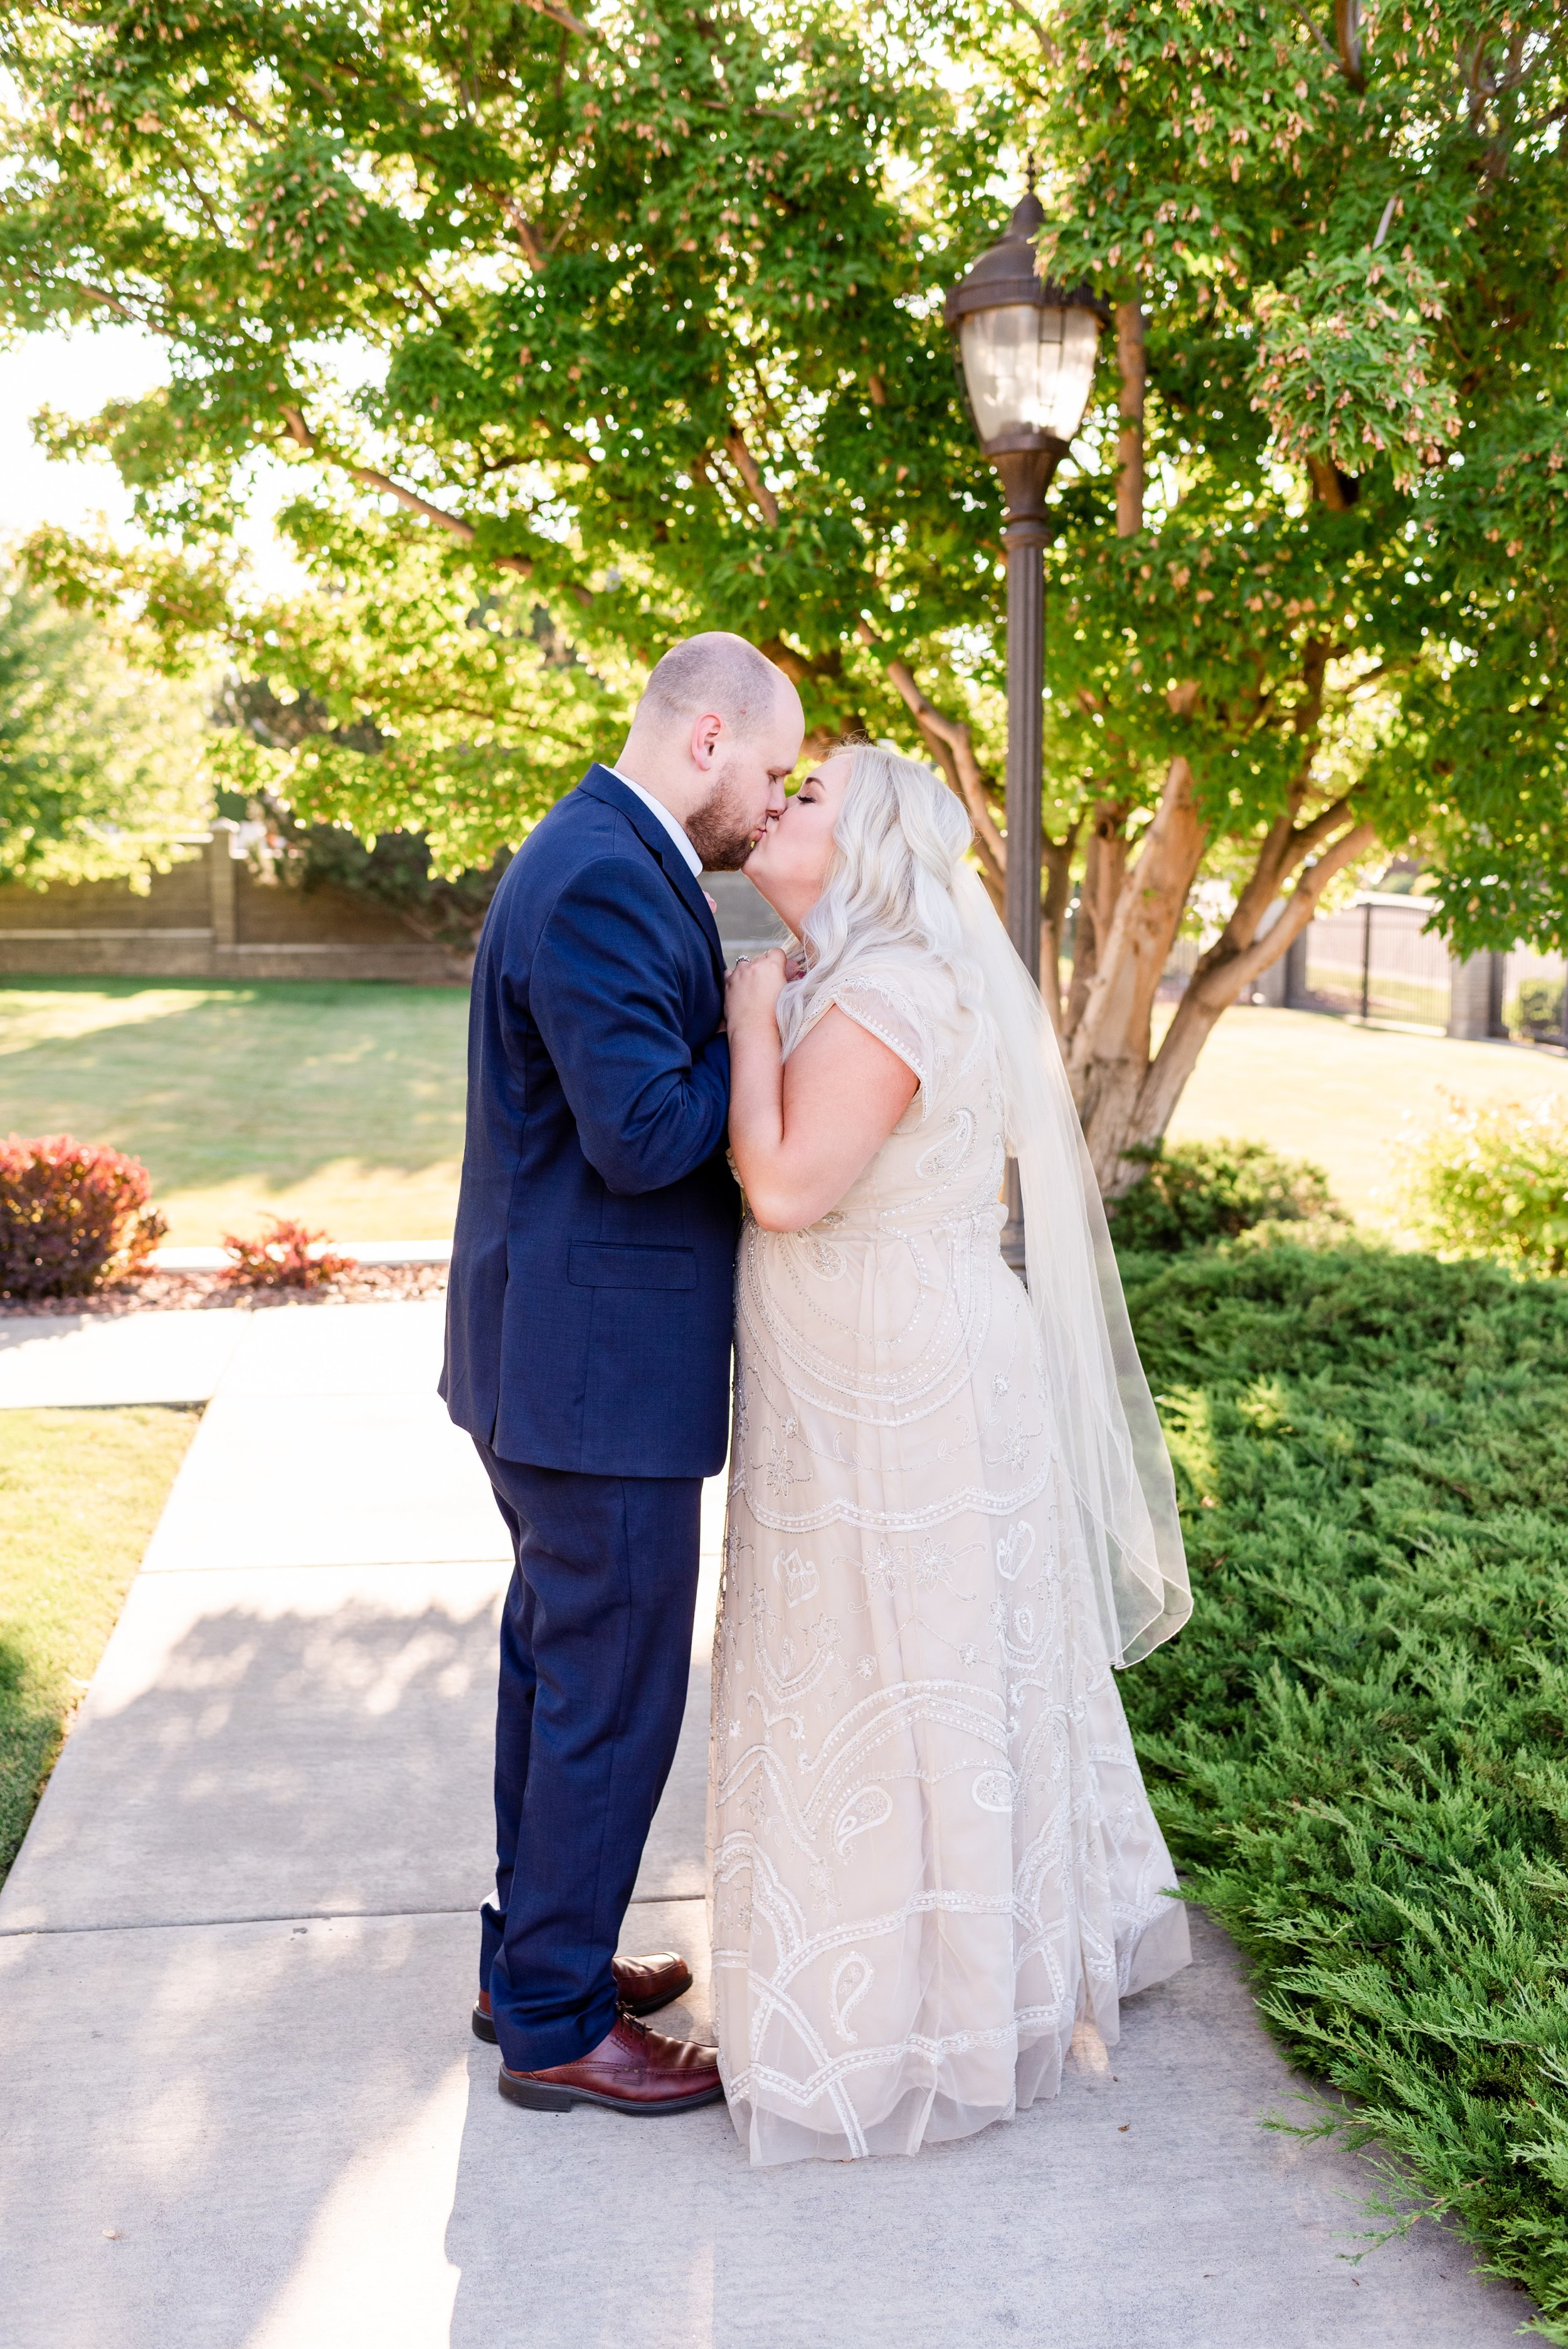 Columbia River Temple LDS Wedding Photographer - Morgan Tayler Photo & Design - Tri Cities Washington Wedding Photographer - Temple Bridal Photos - BHLDN Modest Champagne Wedding Dress